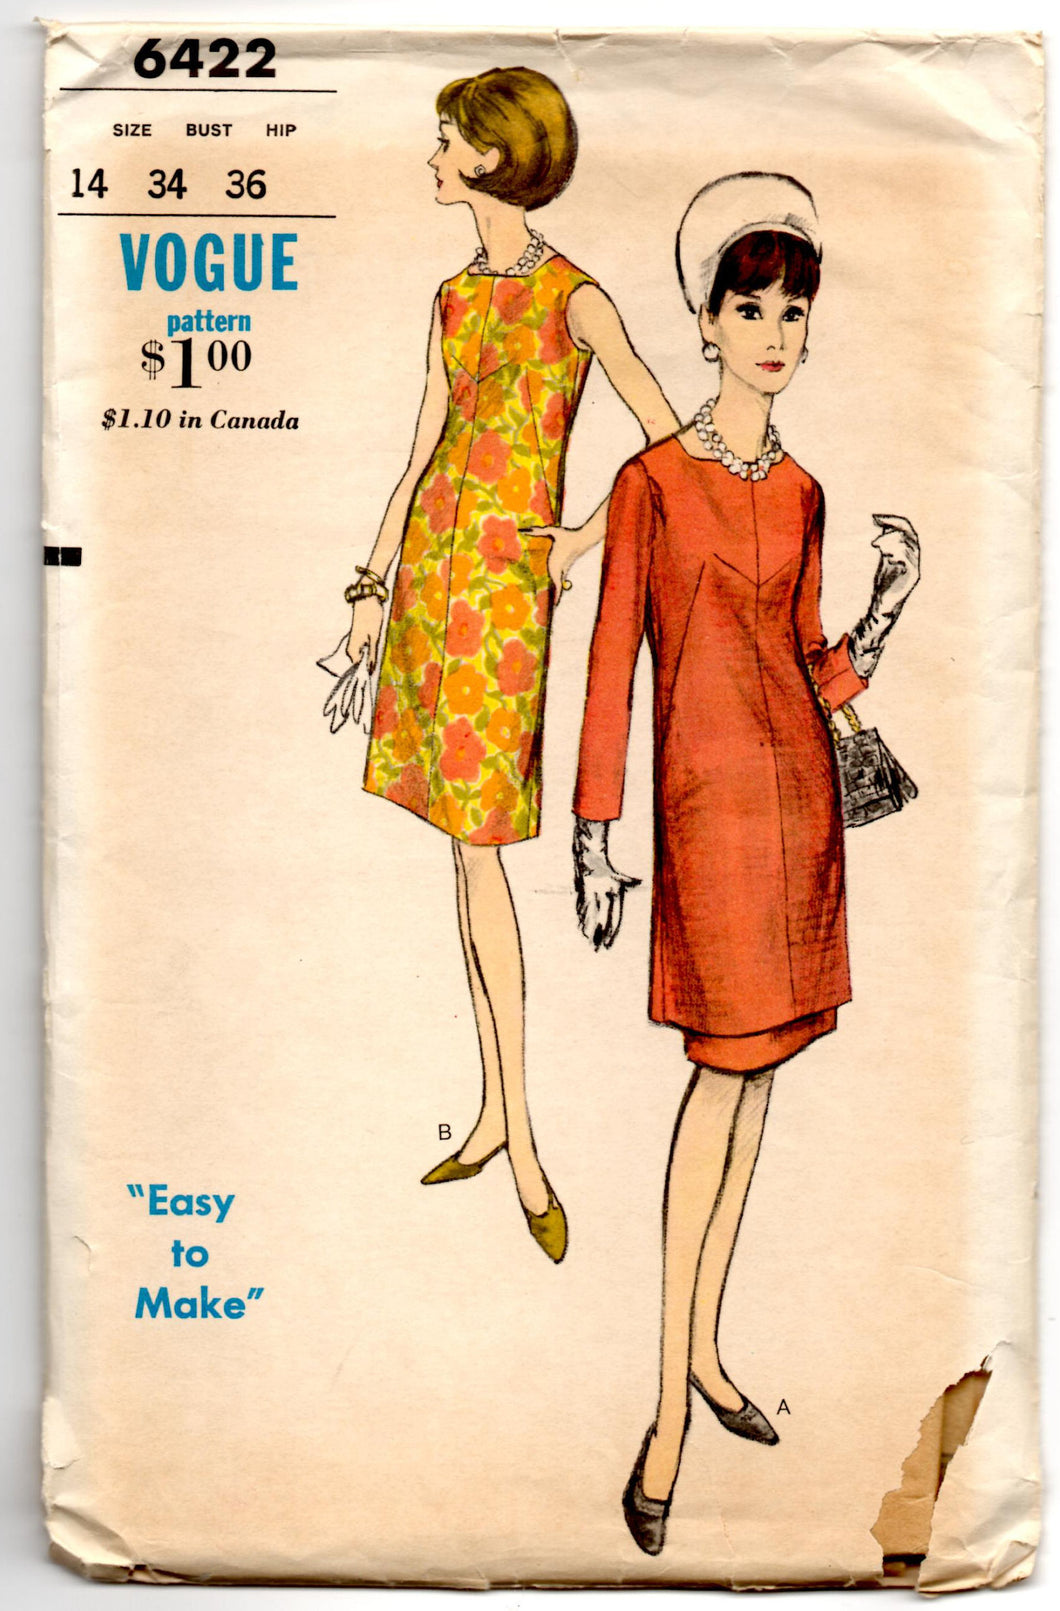 1960's Vogue Day Dress with Two Sleeve Lengths and Skirt Pattern - Bust 34